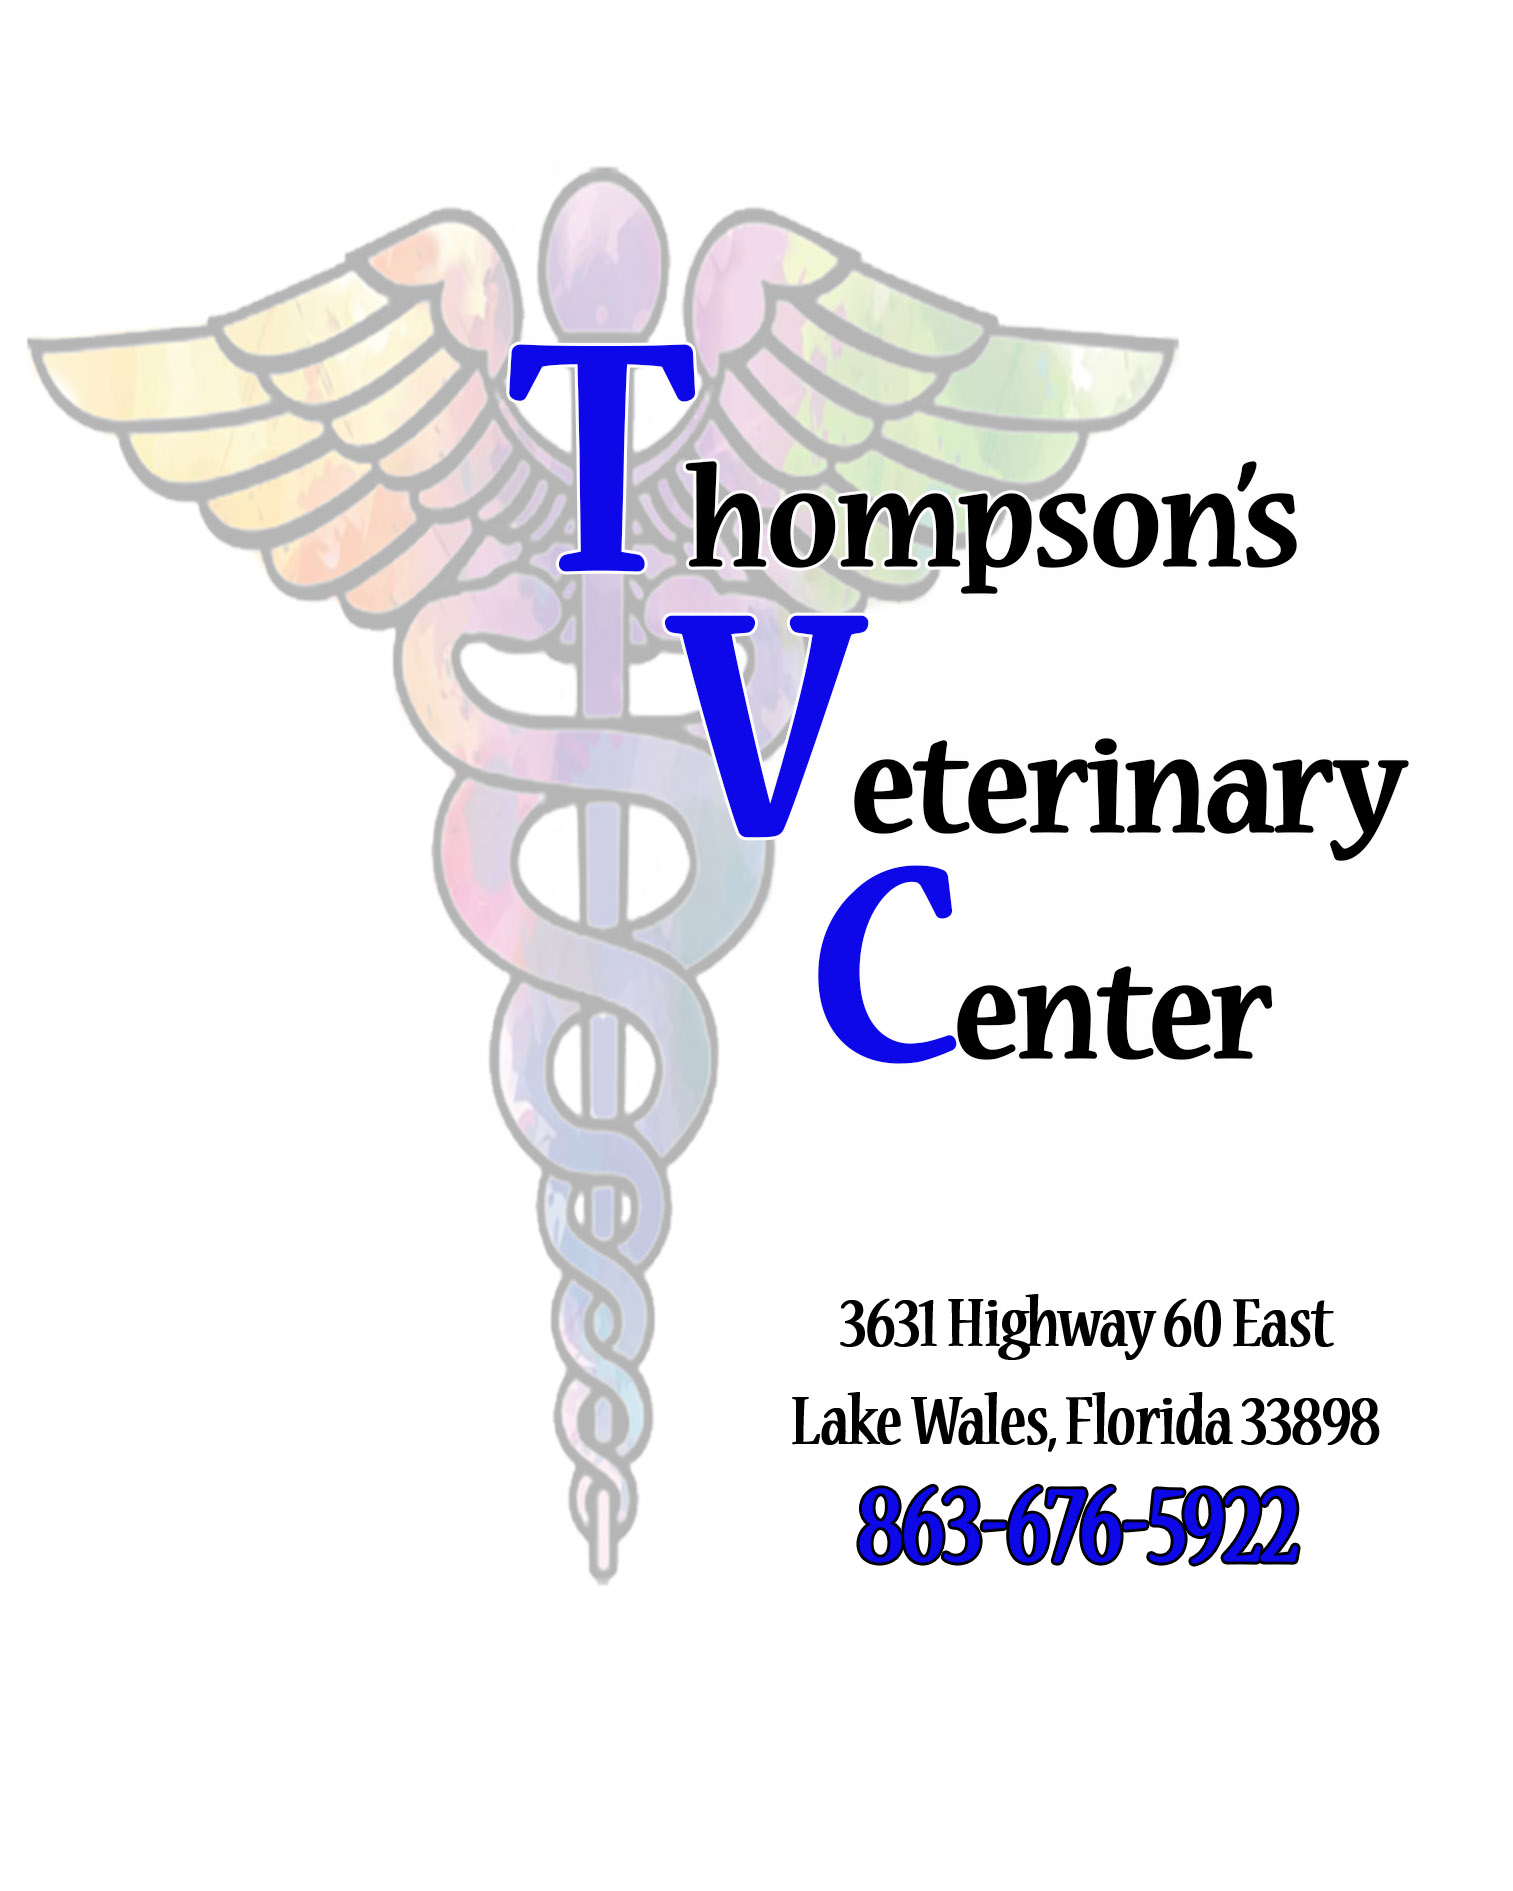 Thompson's Veterinary Center logo